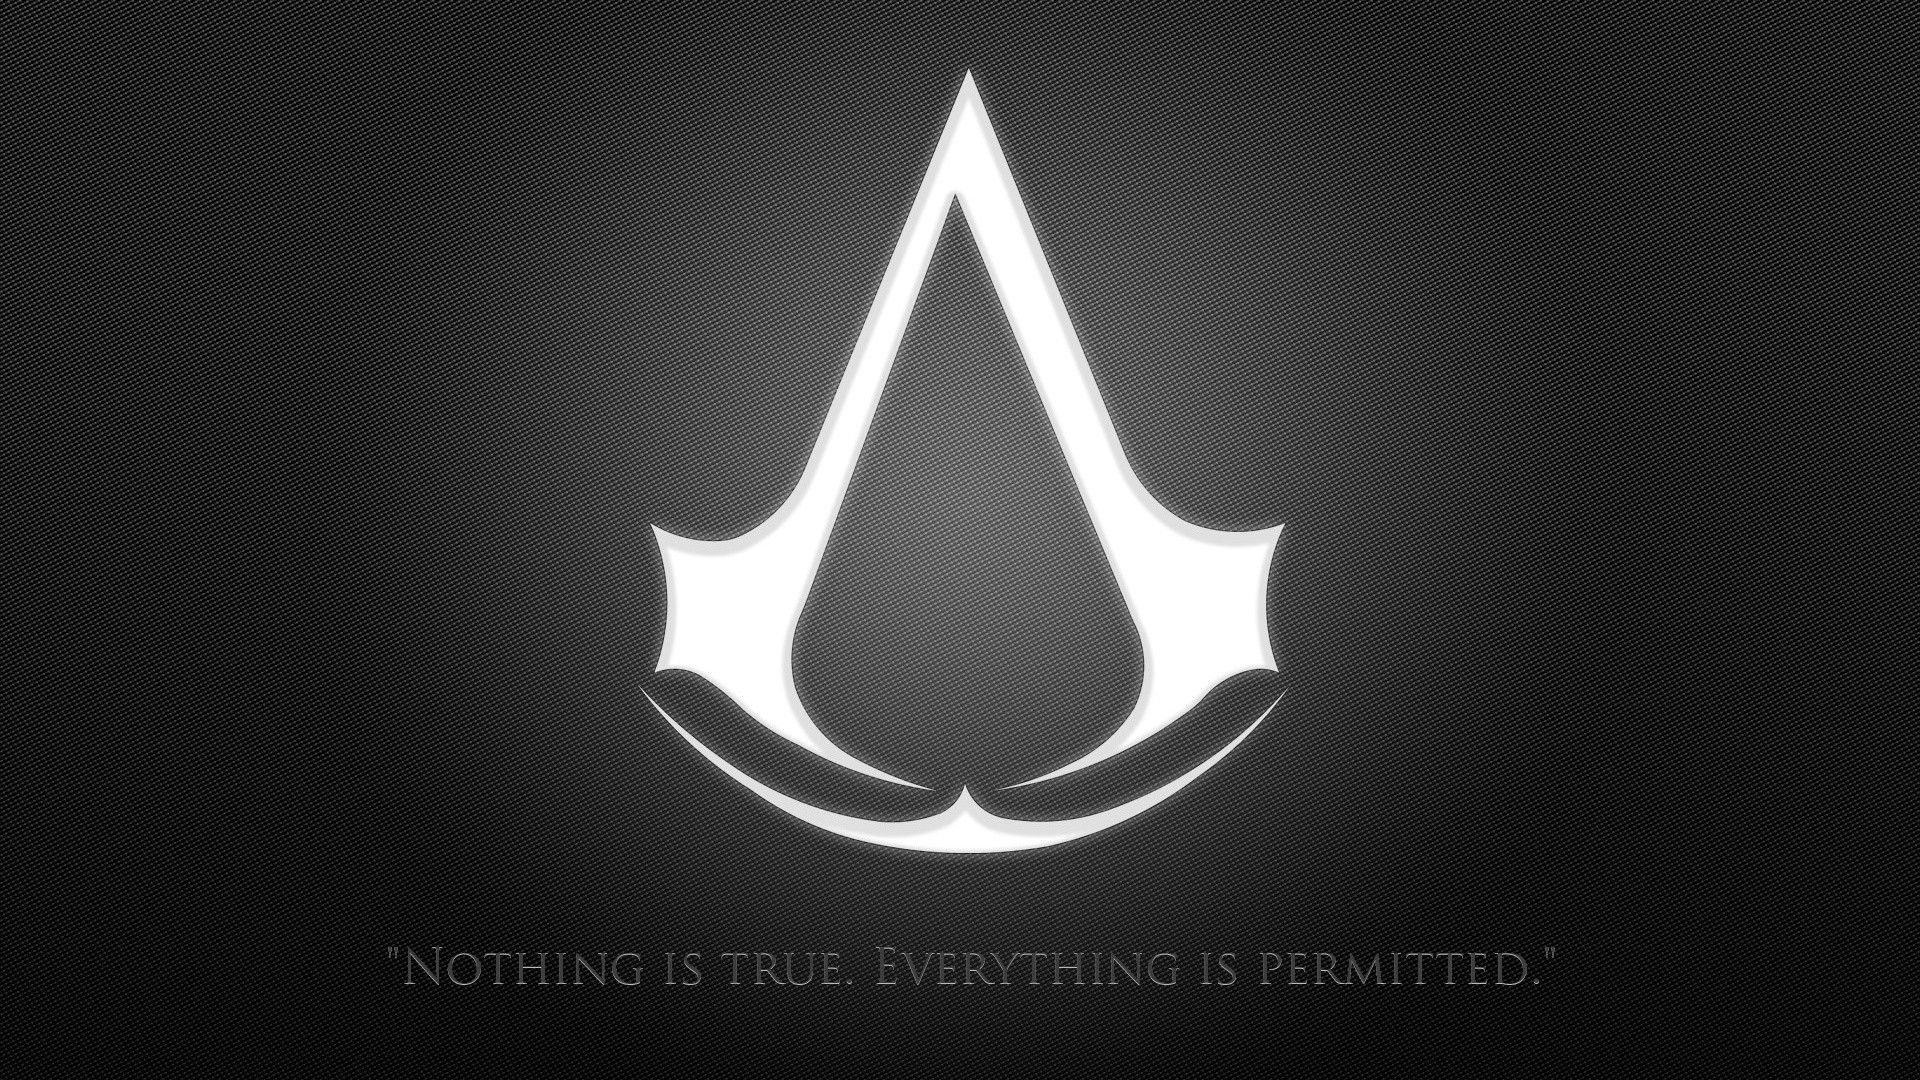 Logo Wallpaper, Assassin's Creed, Merrick, Symbol, Jumlah, Dan Hitam Putih